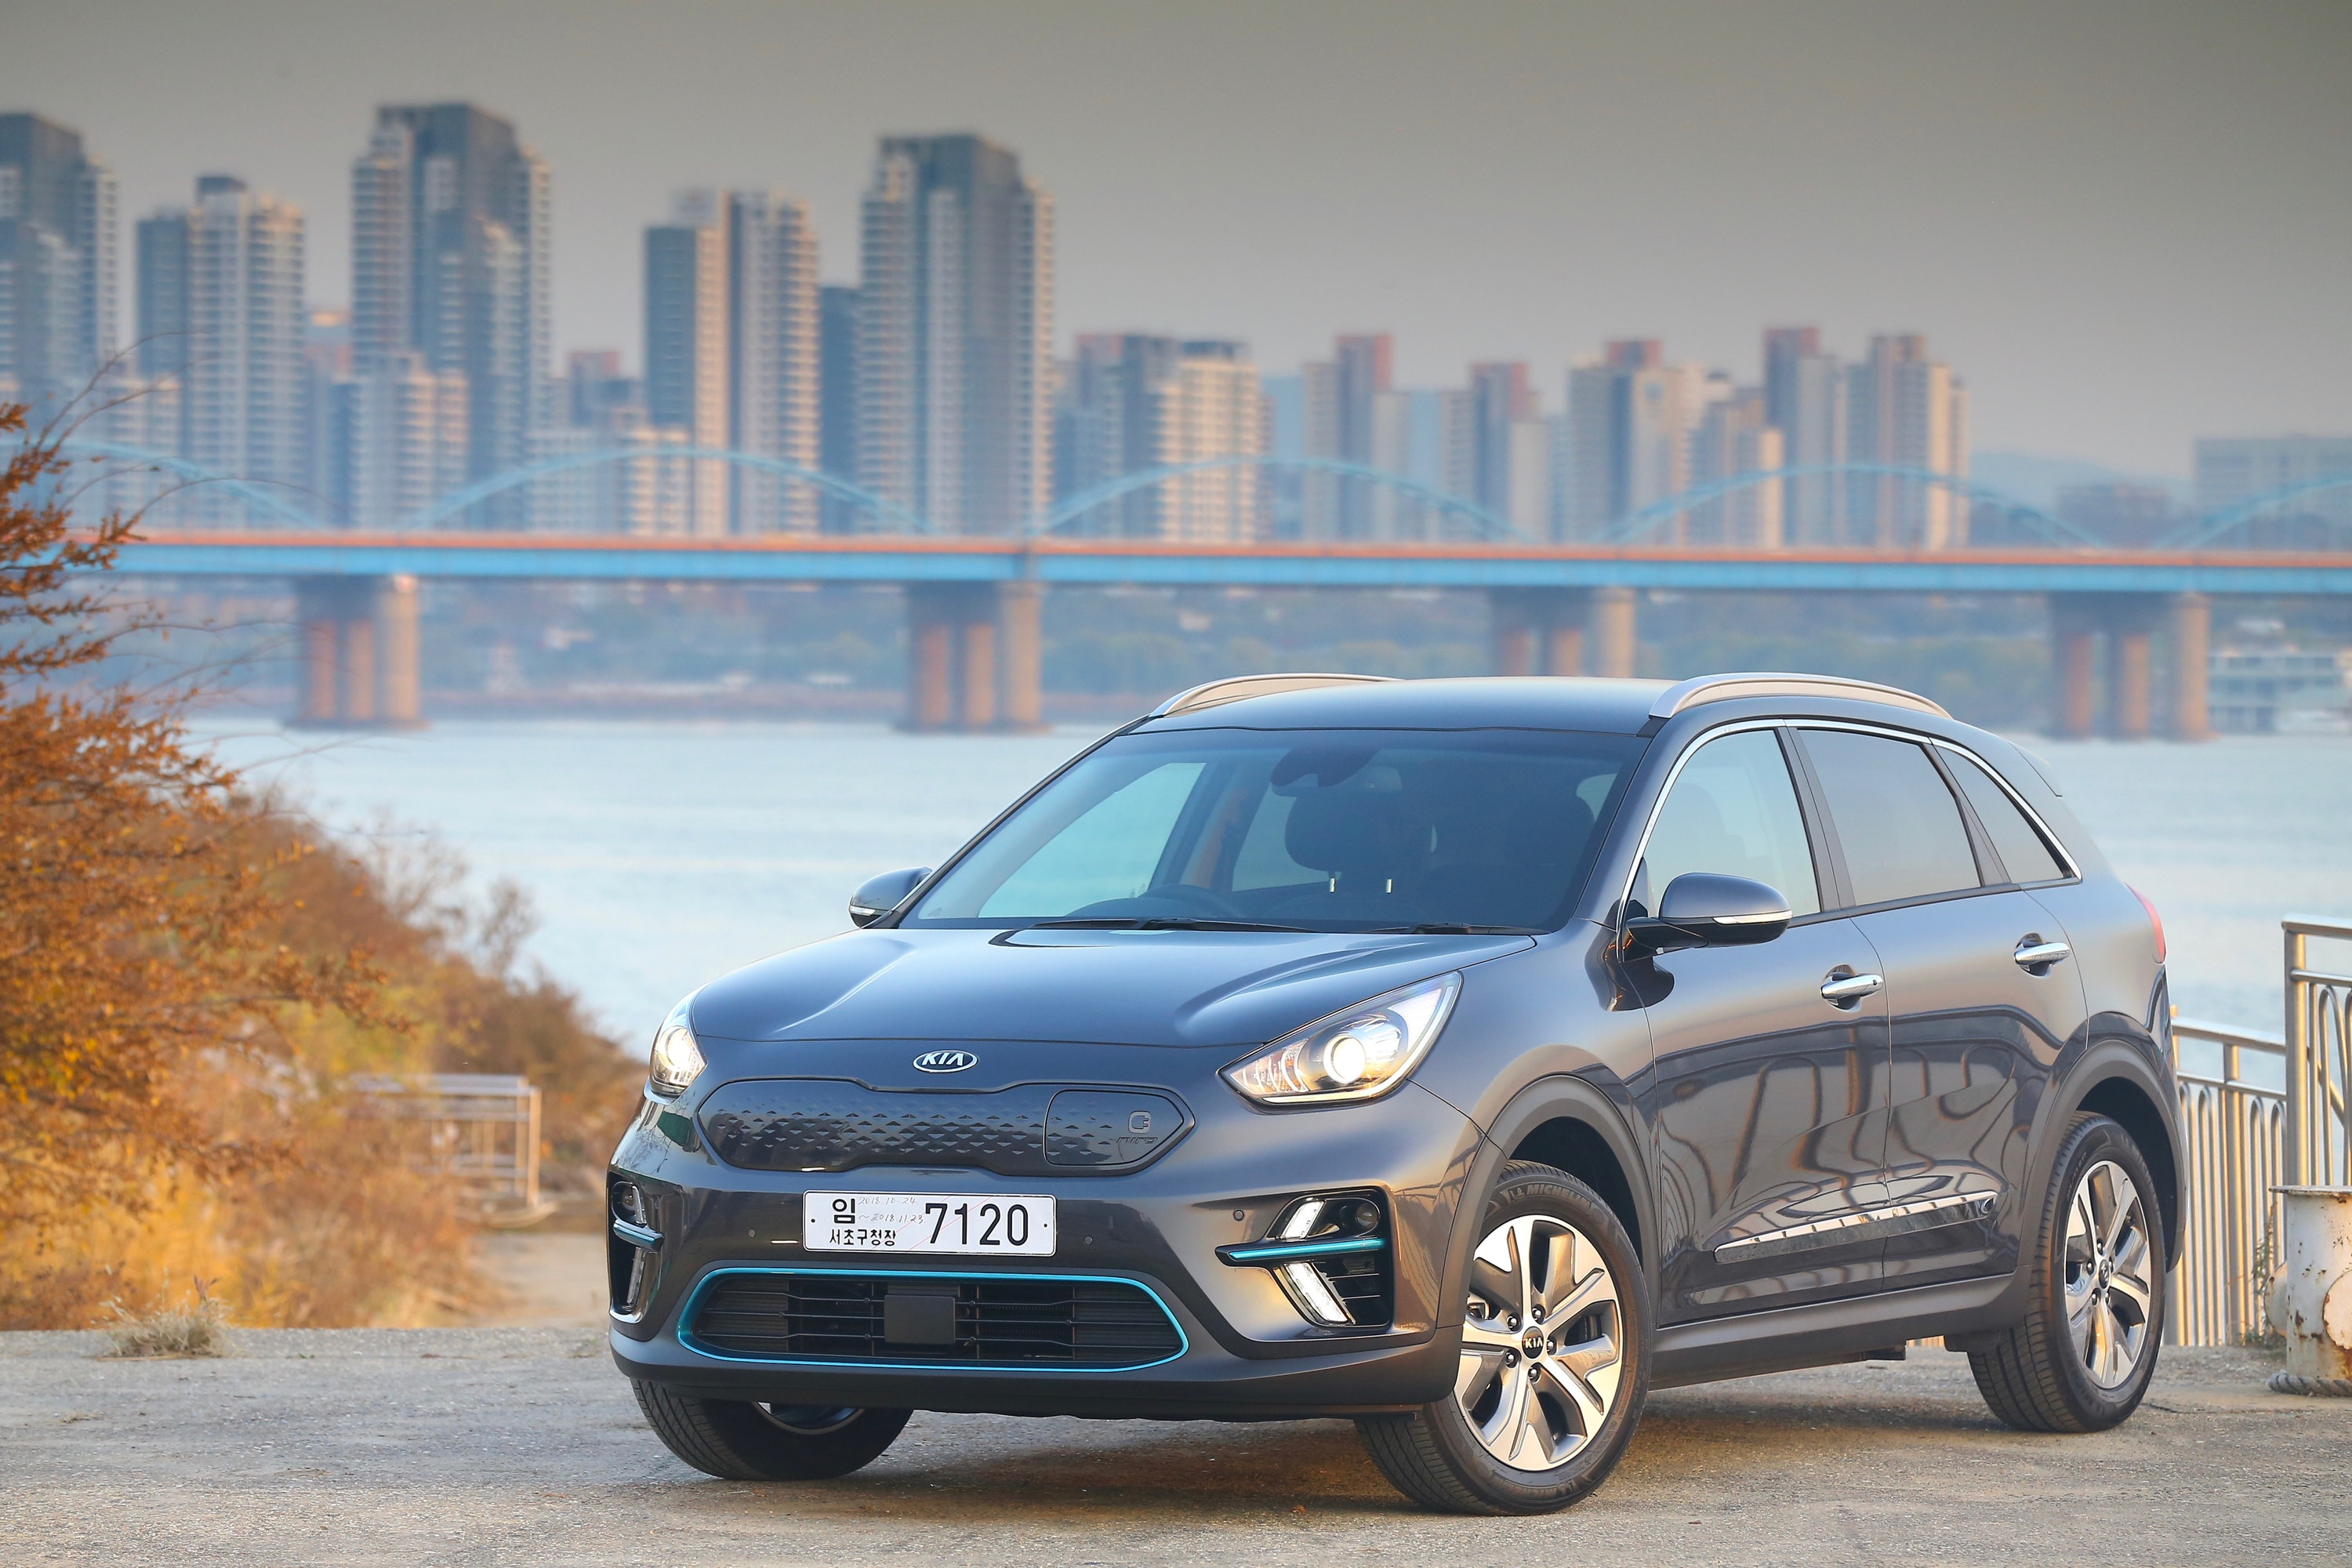 Full view of Kia e-Niro with city in the background